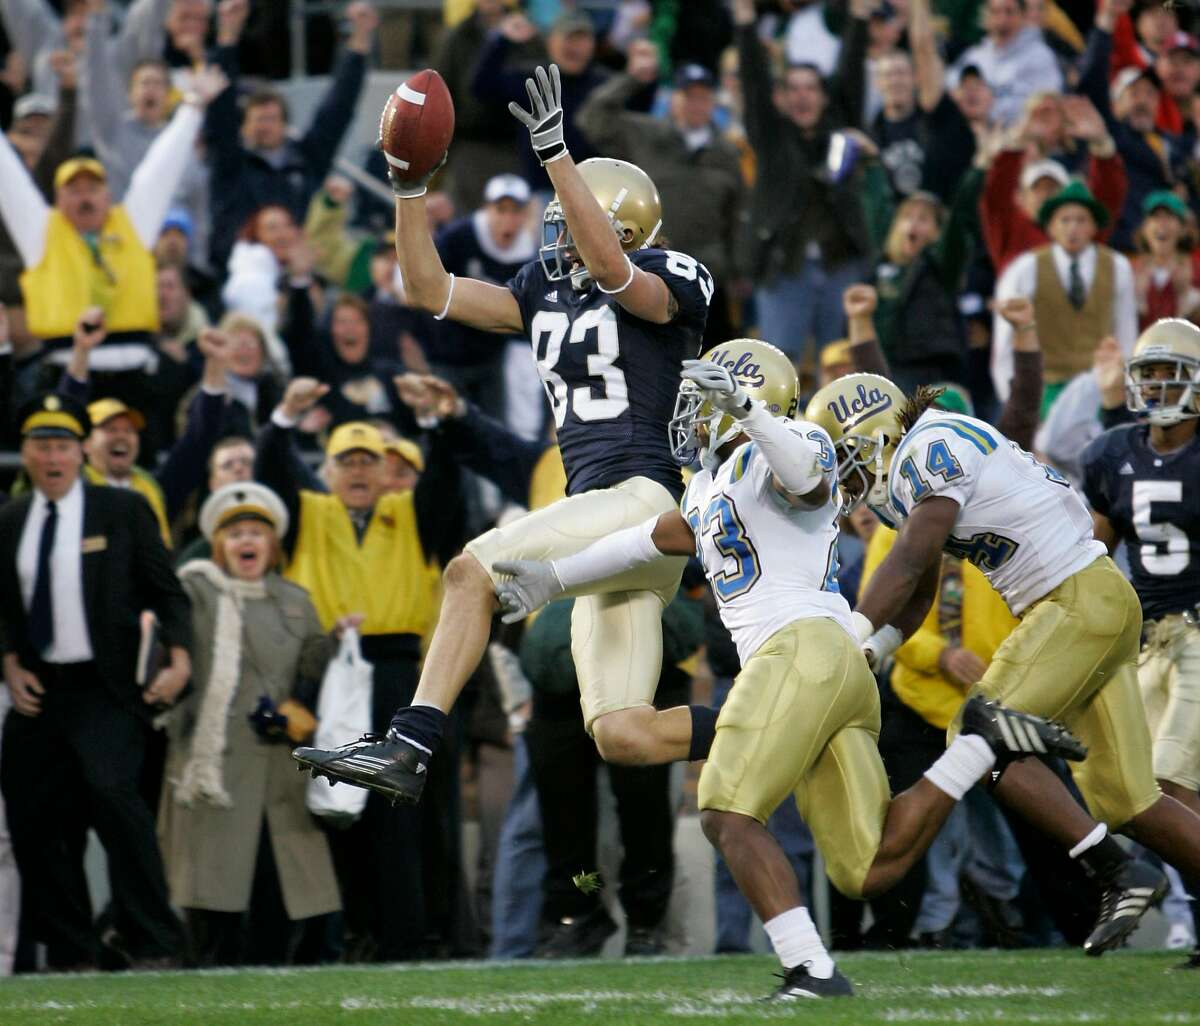 Notre Dame wide receiver Jeff Samardzija, center, leaps into the the end zone in front of UCLA cornerback Trey Brown, right center, and Chris Horton, right, to score the game-winning touchdown in the closing seconds of the game during college football action in South Bend, Ind., Saturday, Oct. 21, 2006. Notre Dames defeated UCLA 20-17. (AP Photo/Michael Conroy)